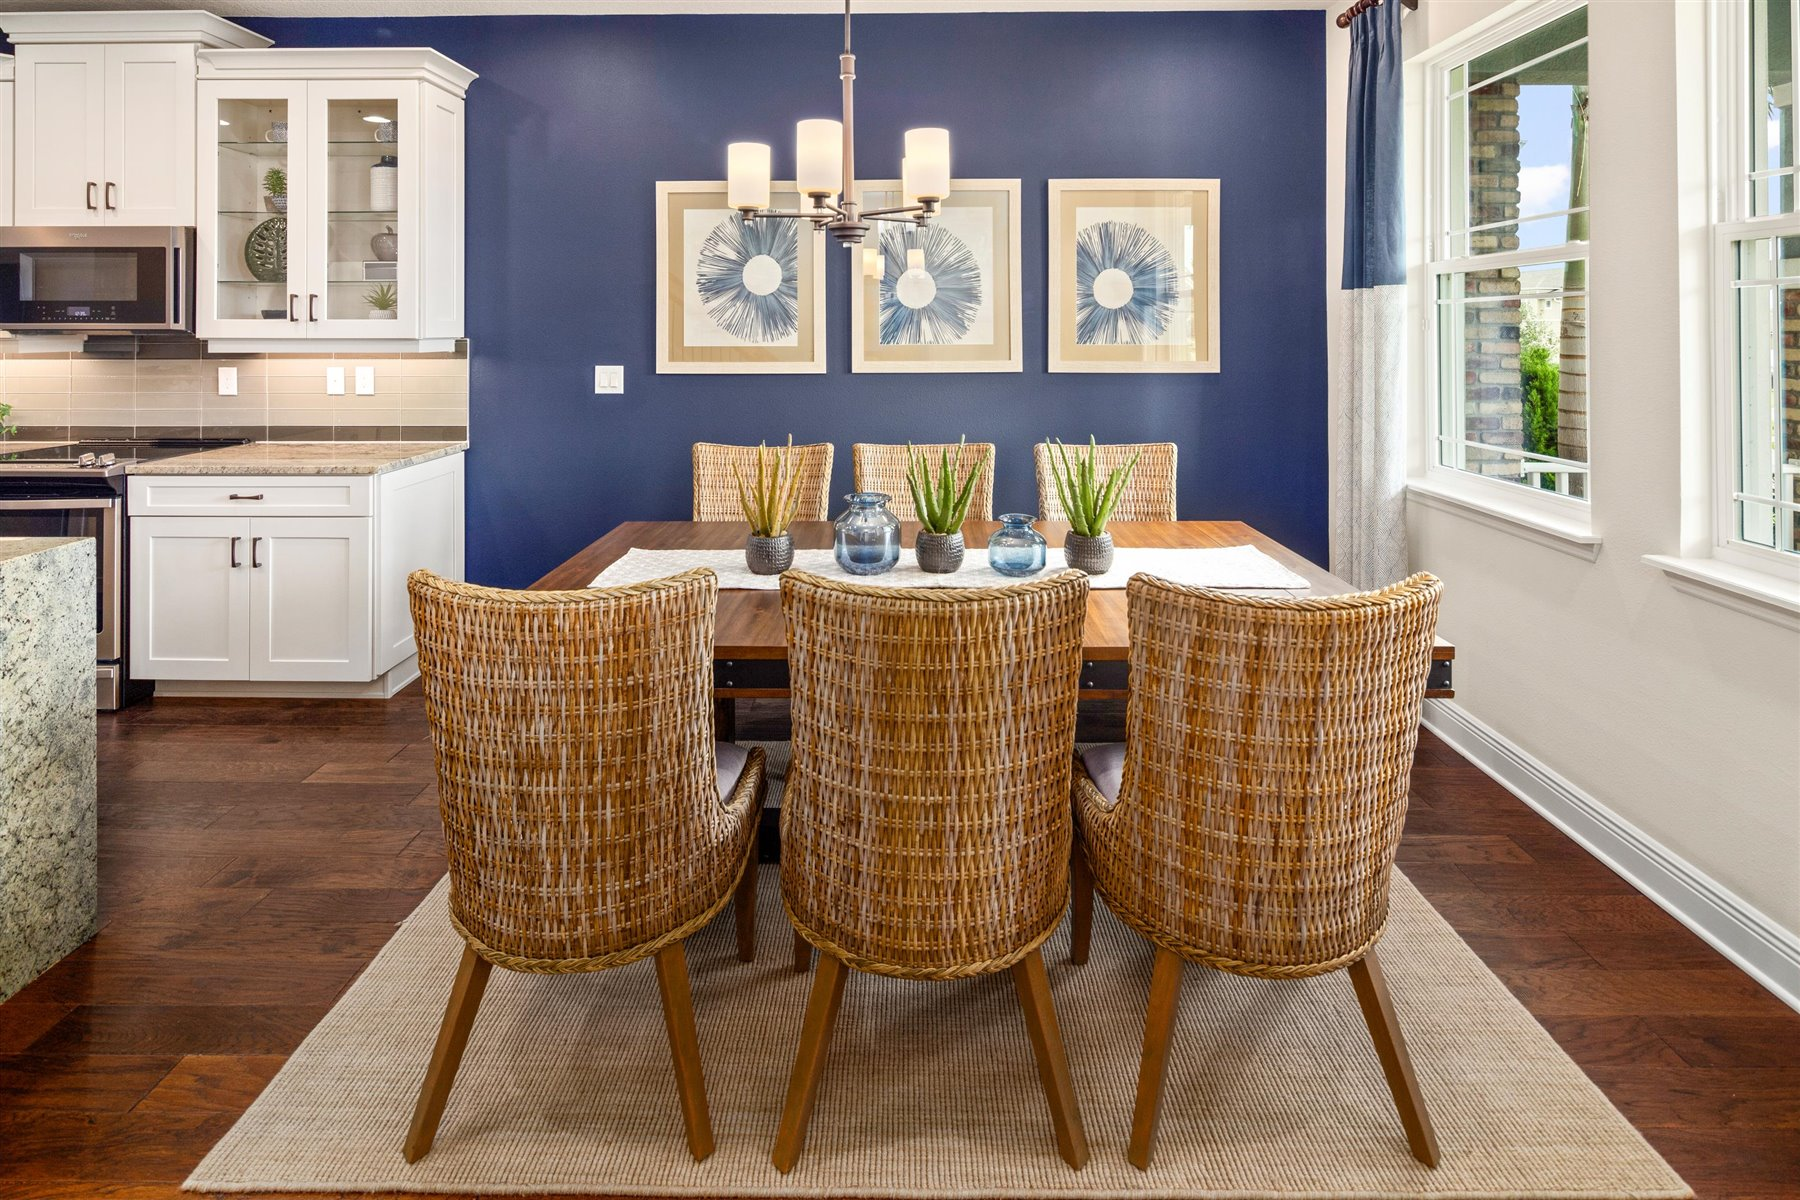 Arcadia Plan Dining at Hawksmoor in Winter Garden Florida by Mattamy Homes